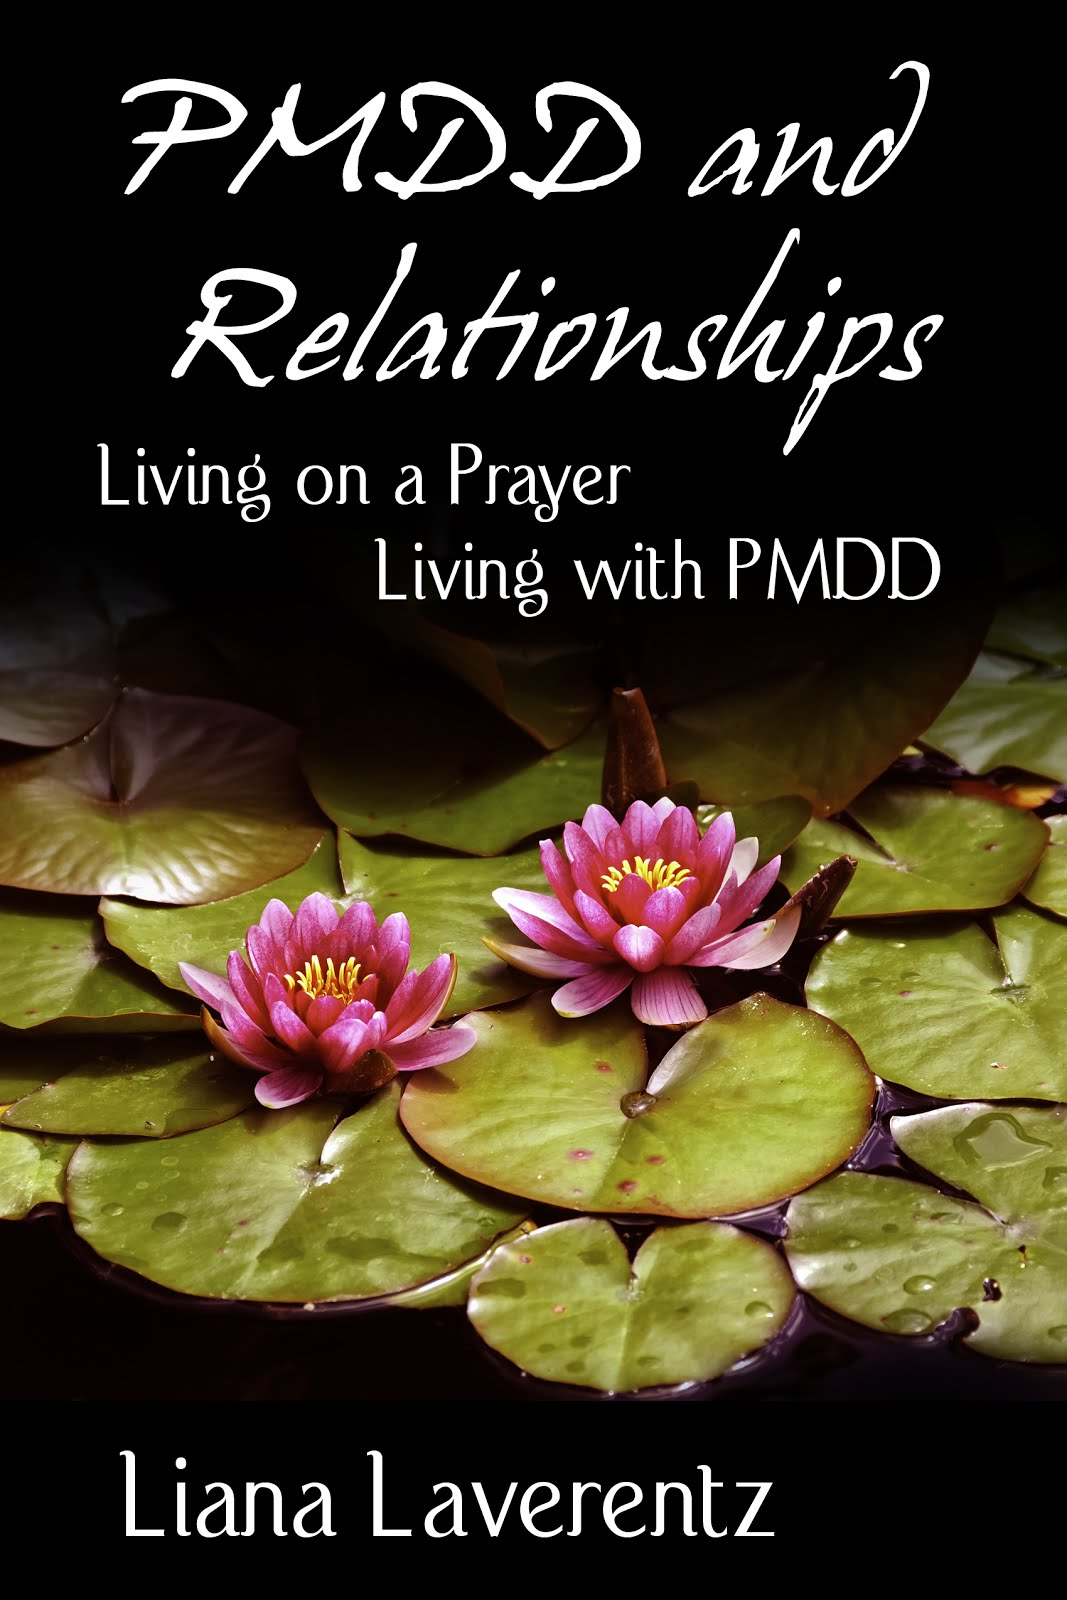 PMDD and Relationships.  Click on the cover to buy at Amazon.